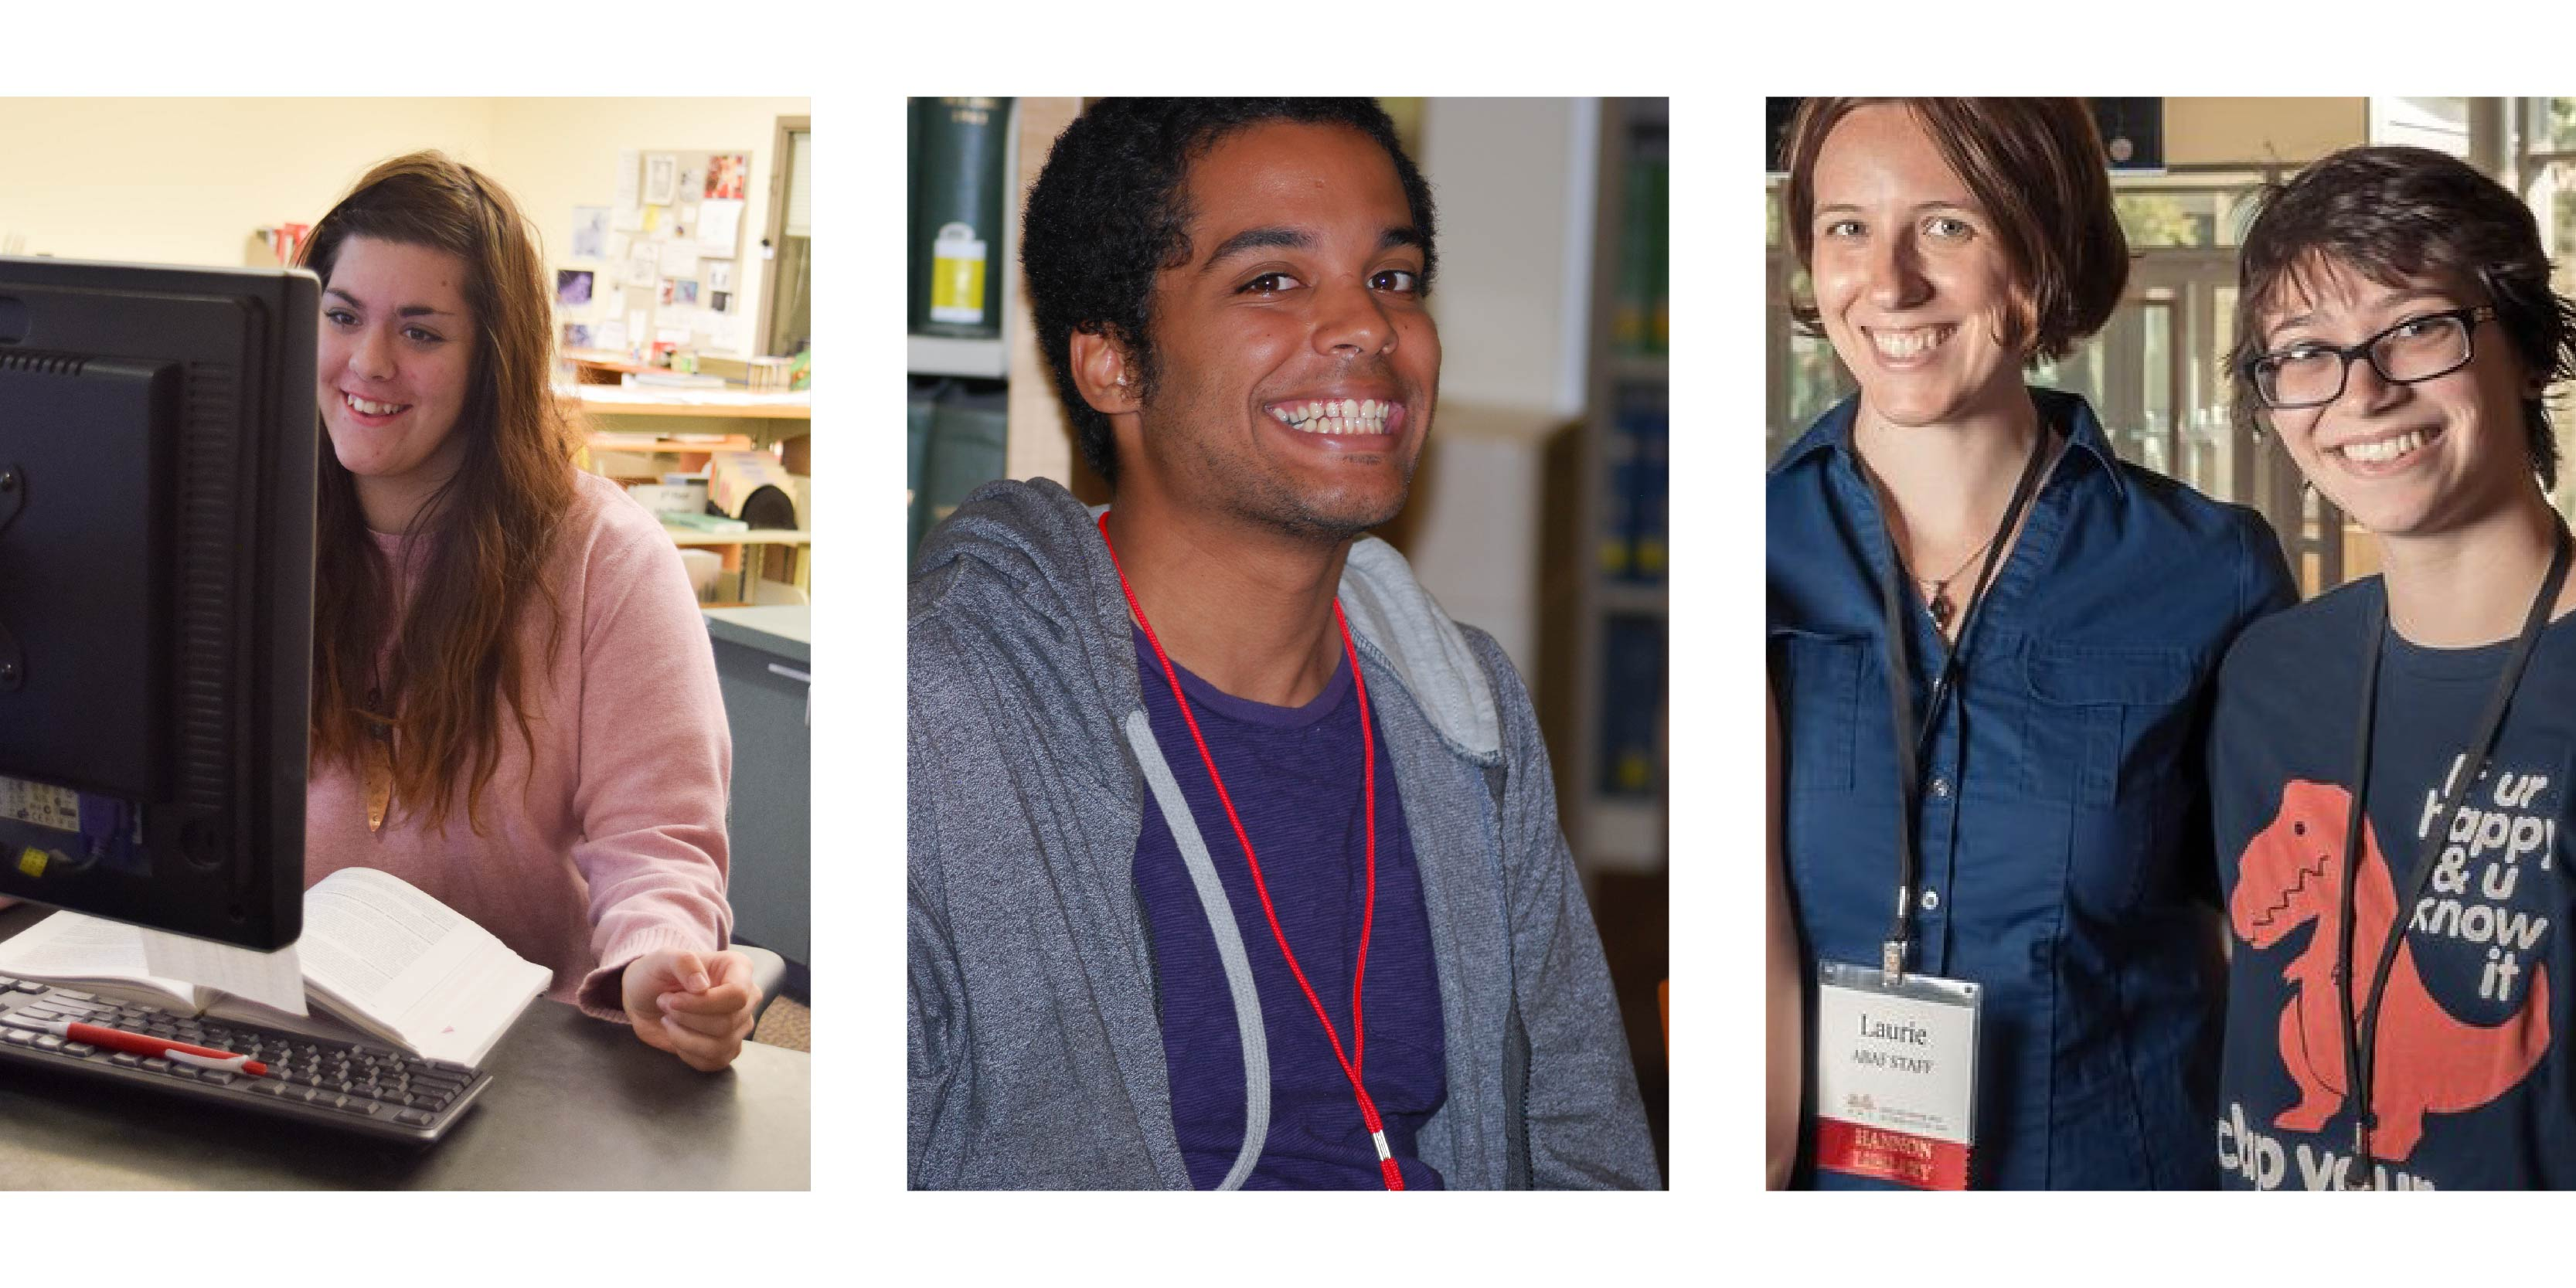 collage of four different student employees at Hannon Library